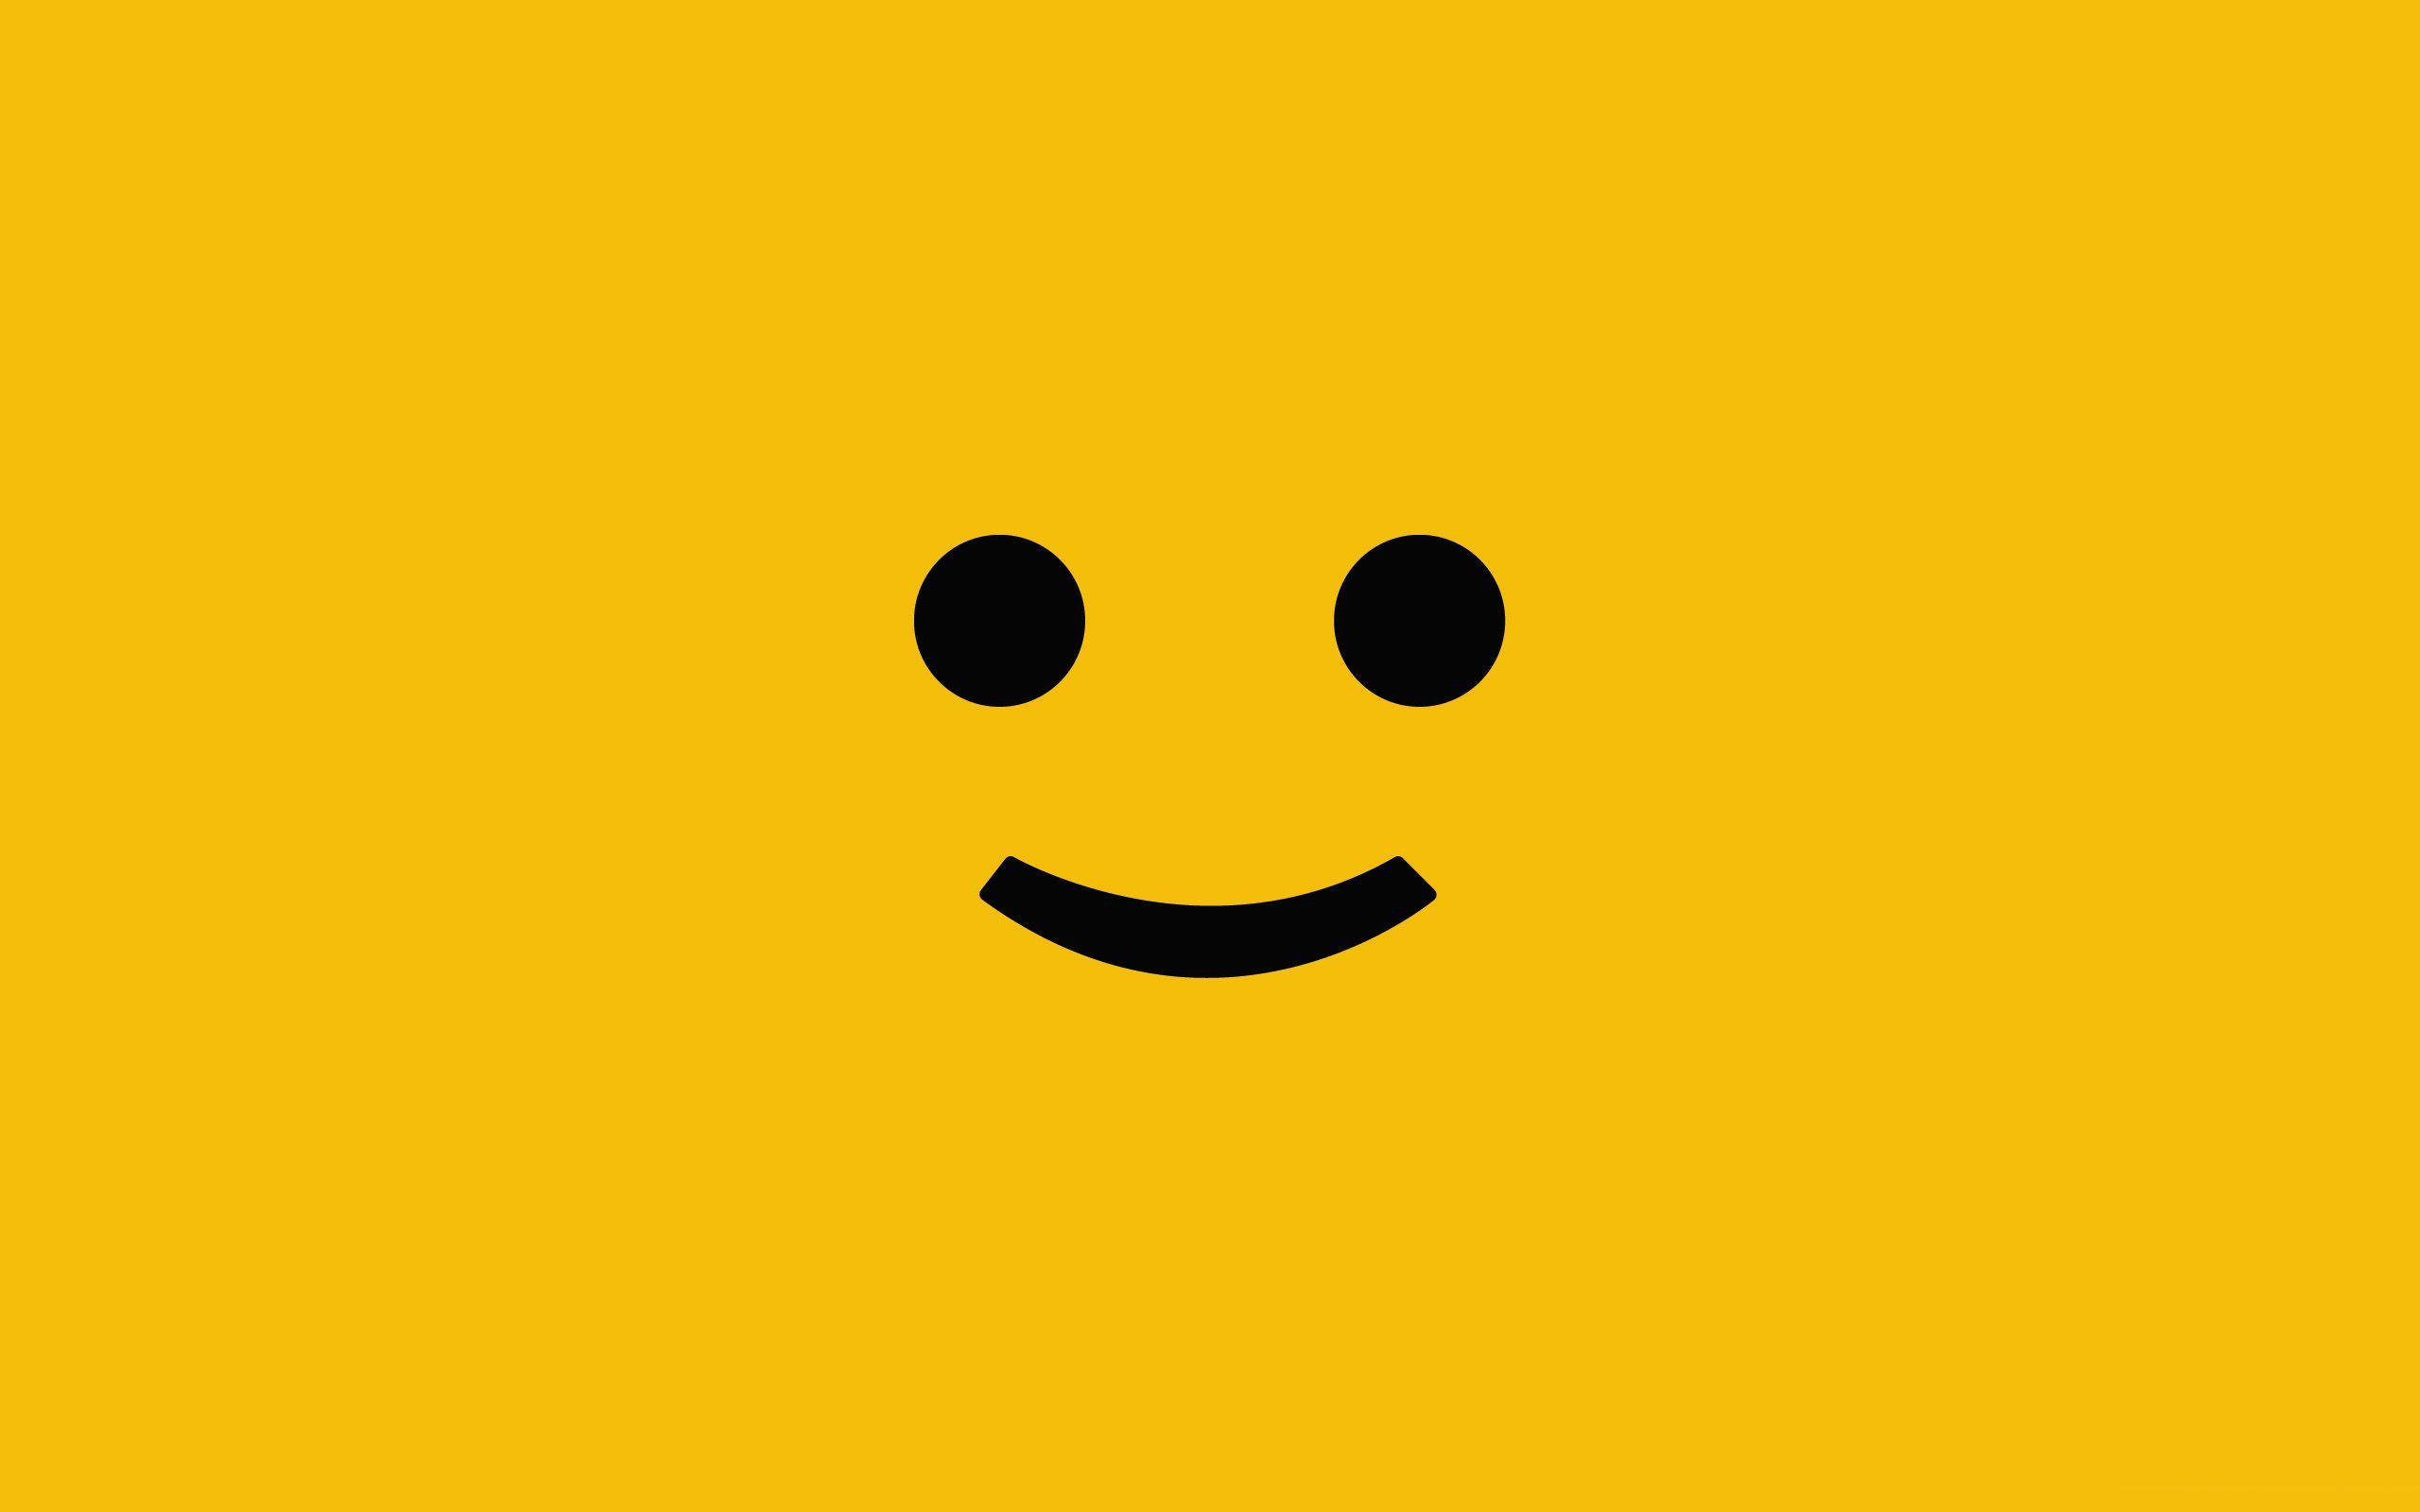 Yellow Smiley Face Wallpaper